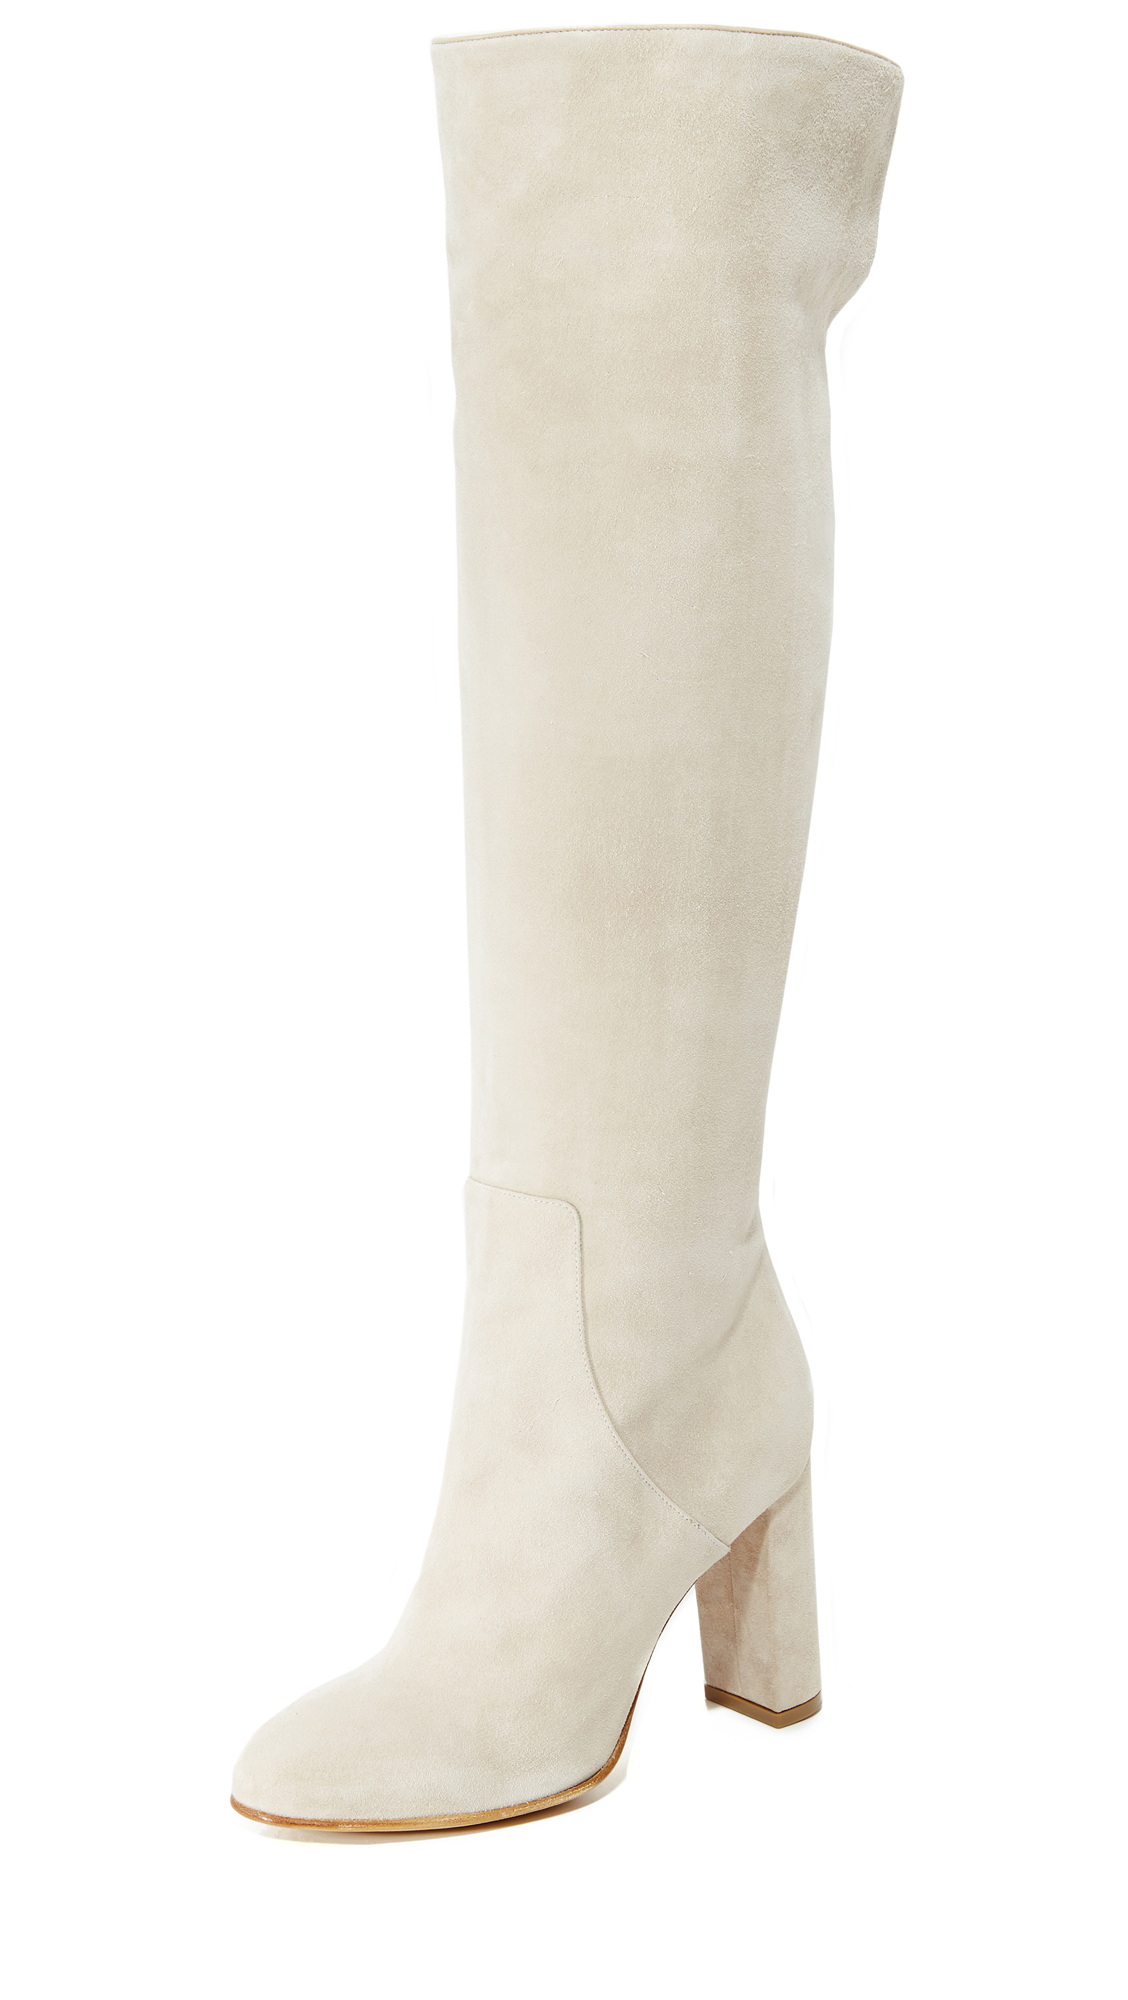 Alexa Wagner Theresa Suede Boots - Peonia